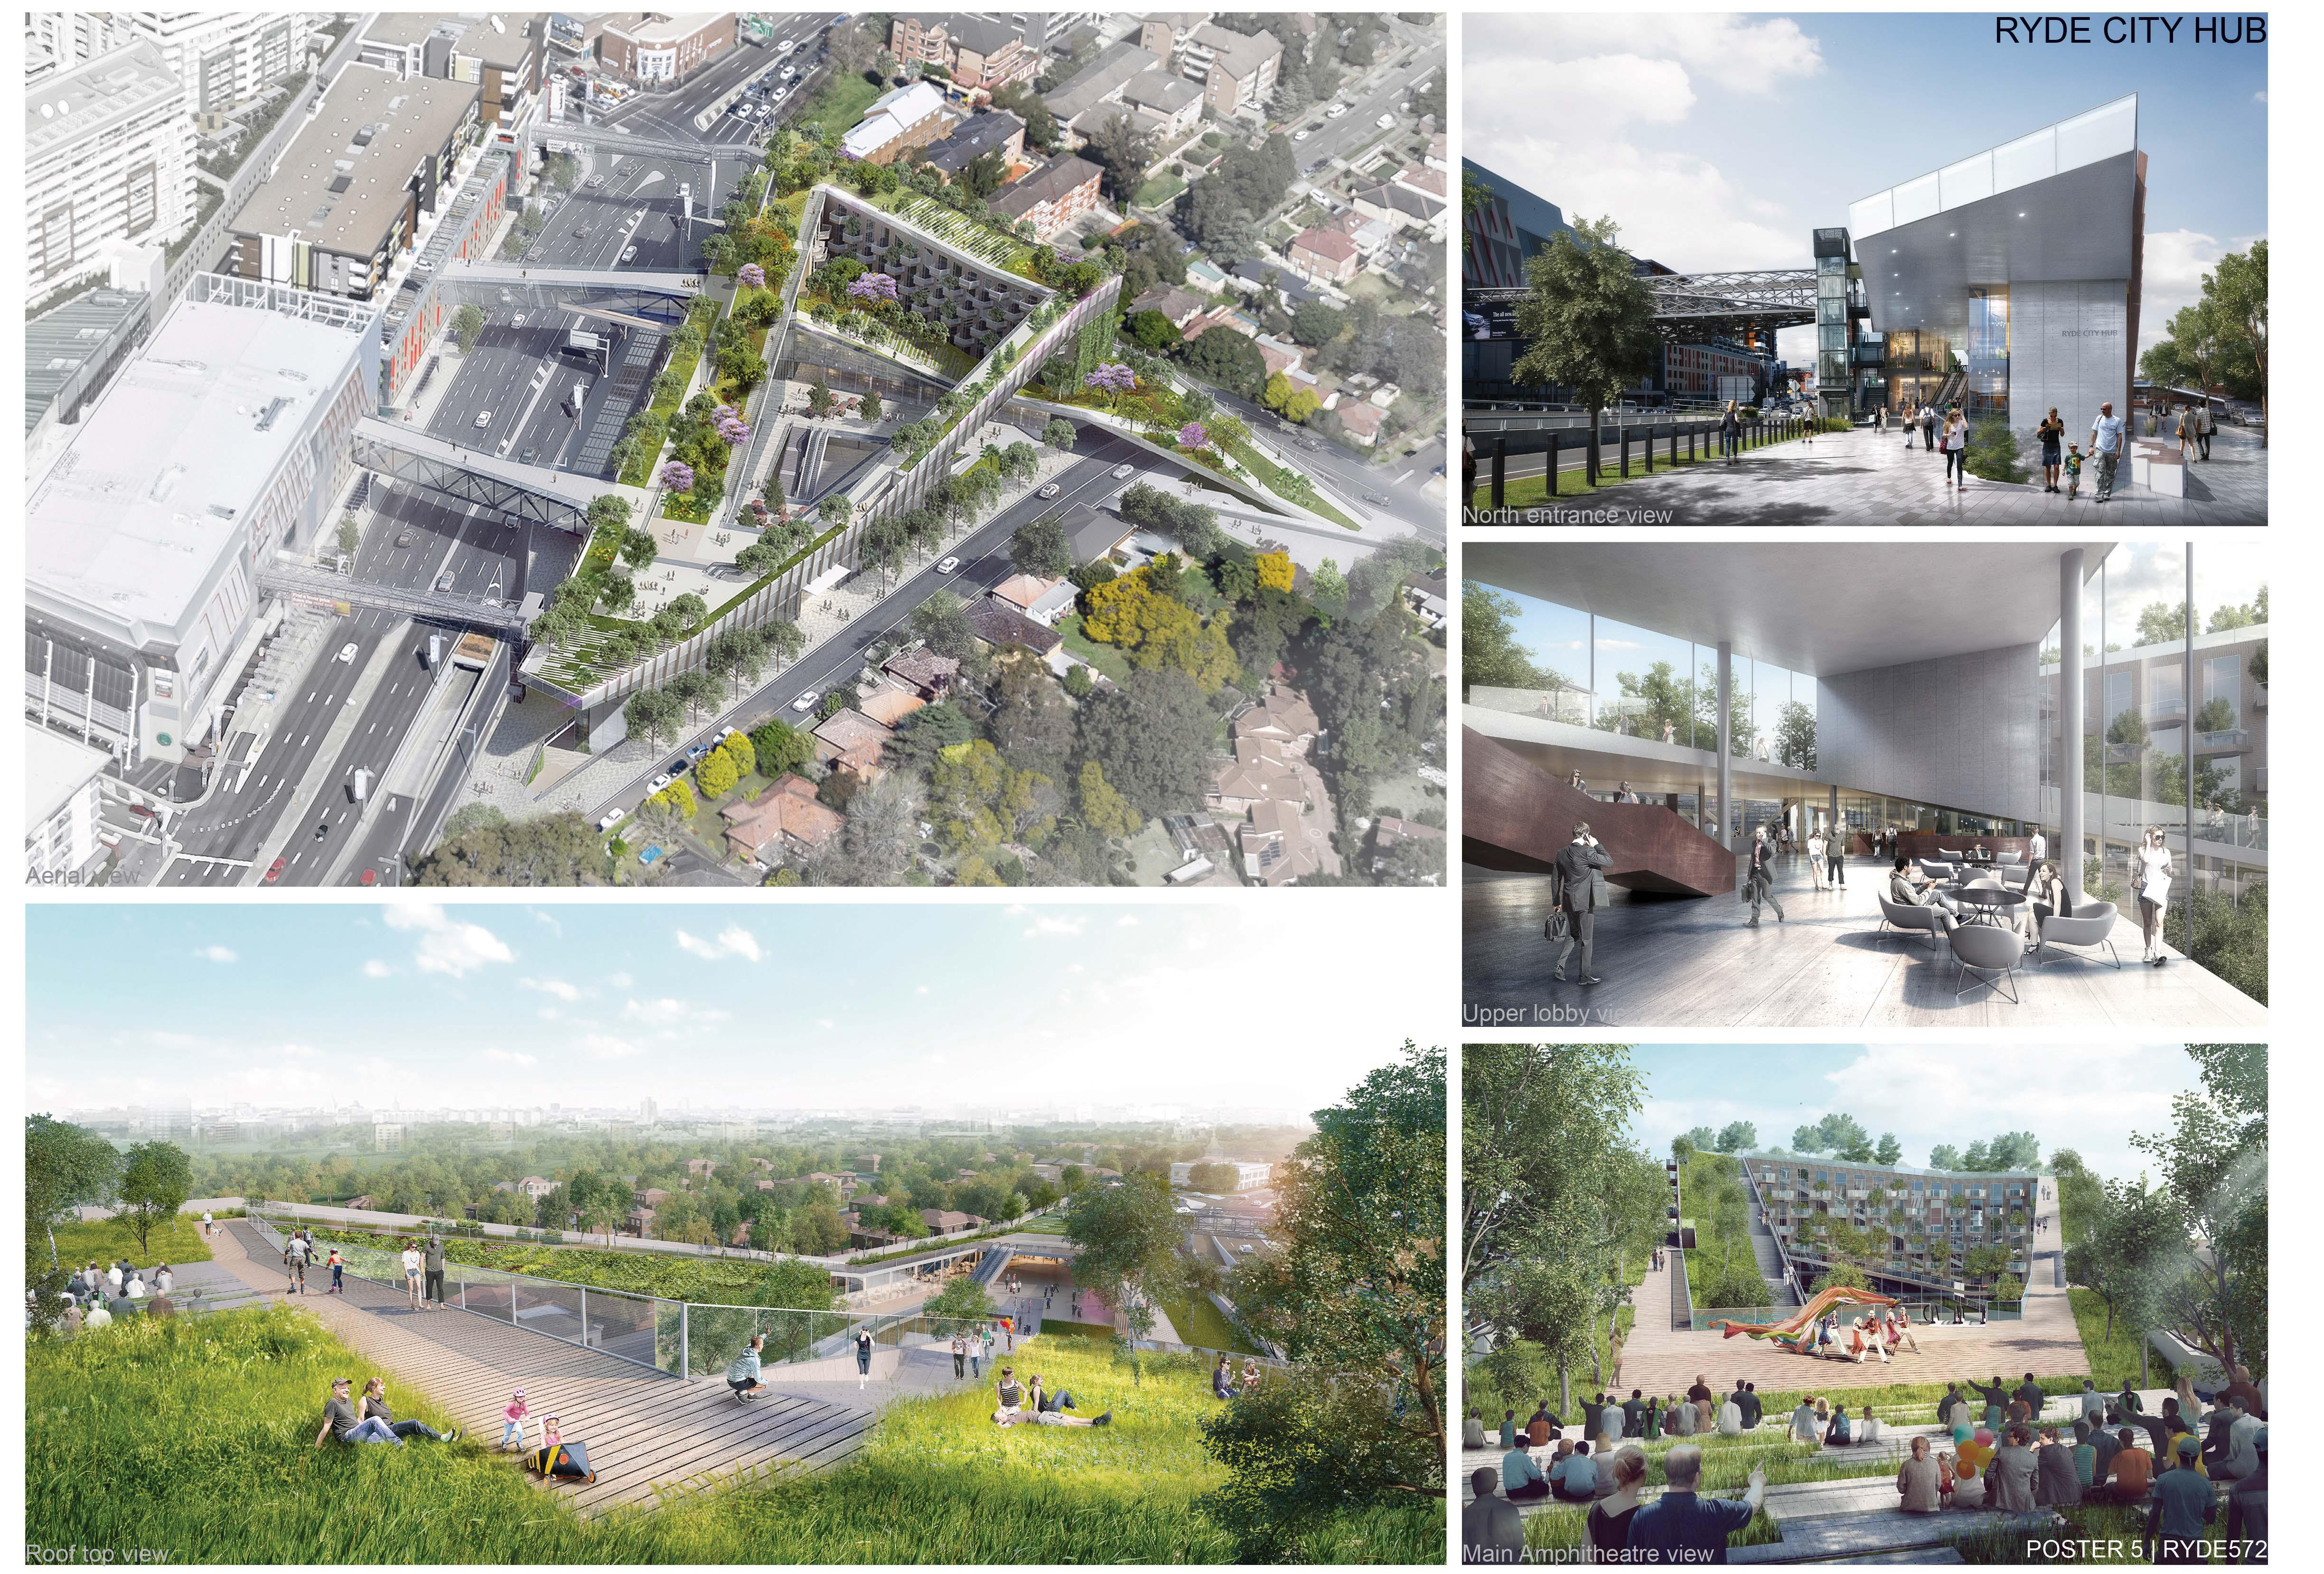 Design Our Ryde winner Entry 572 Beijing Institute ofArchitectural Design China views